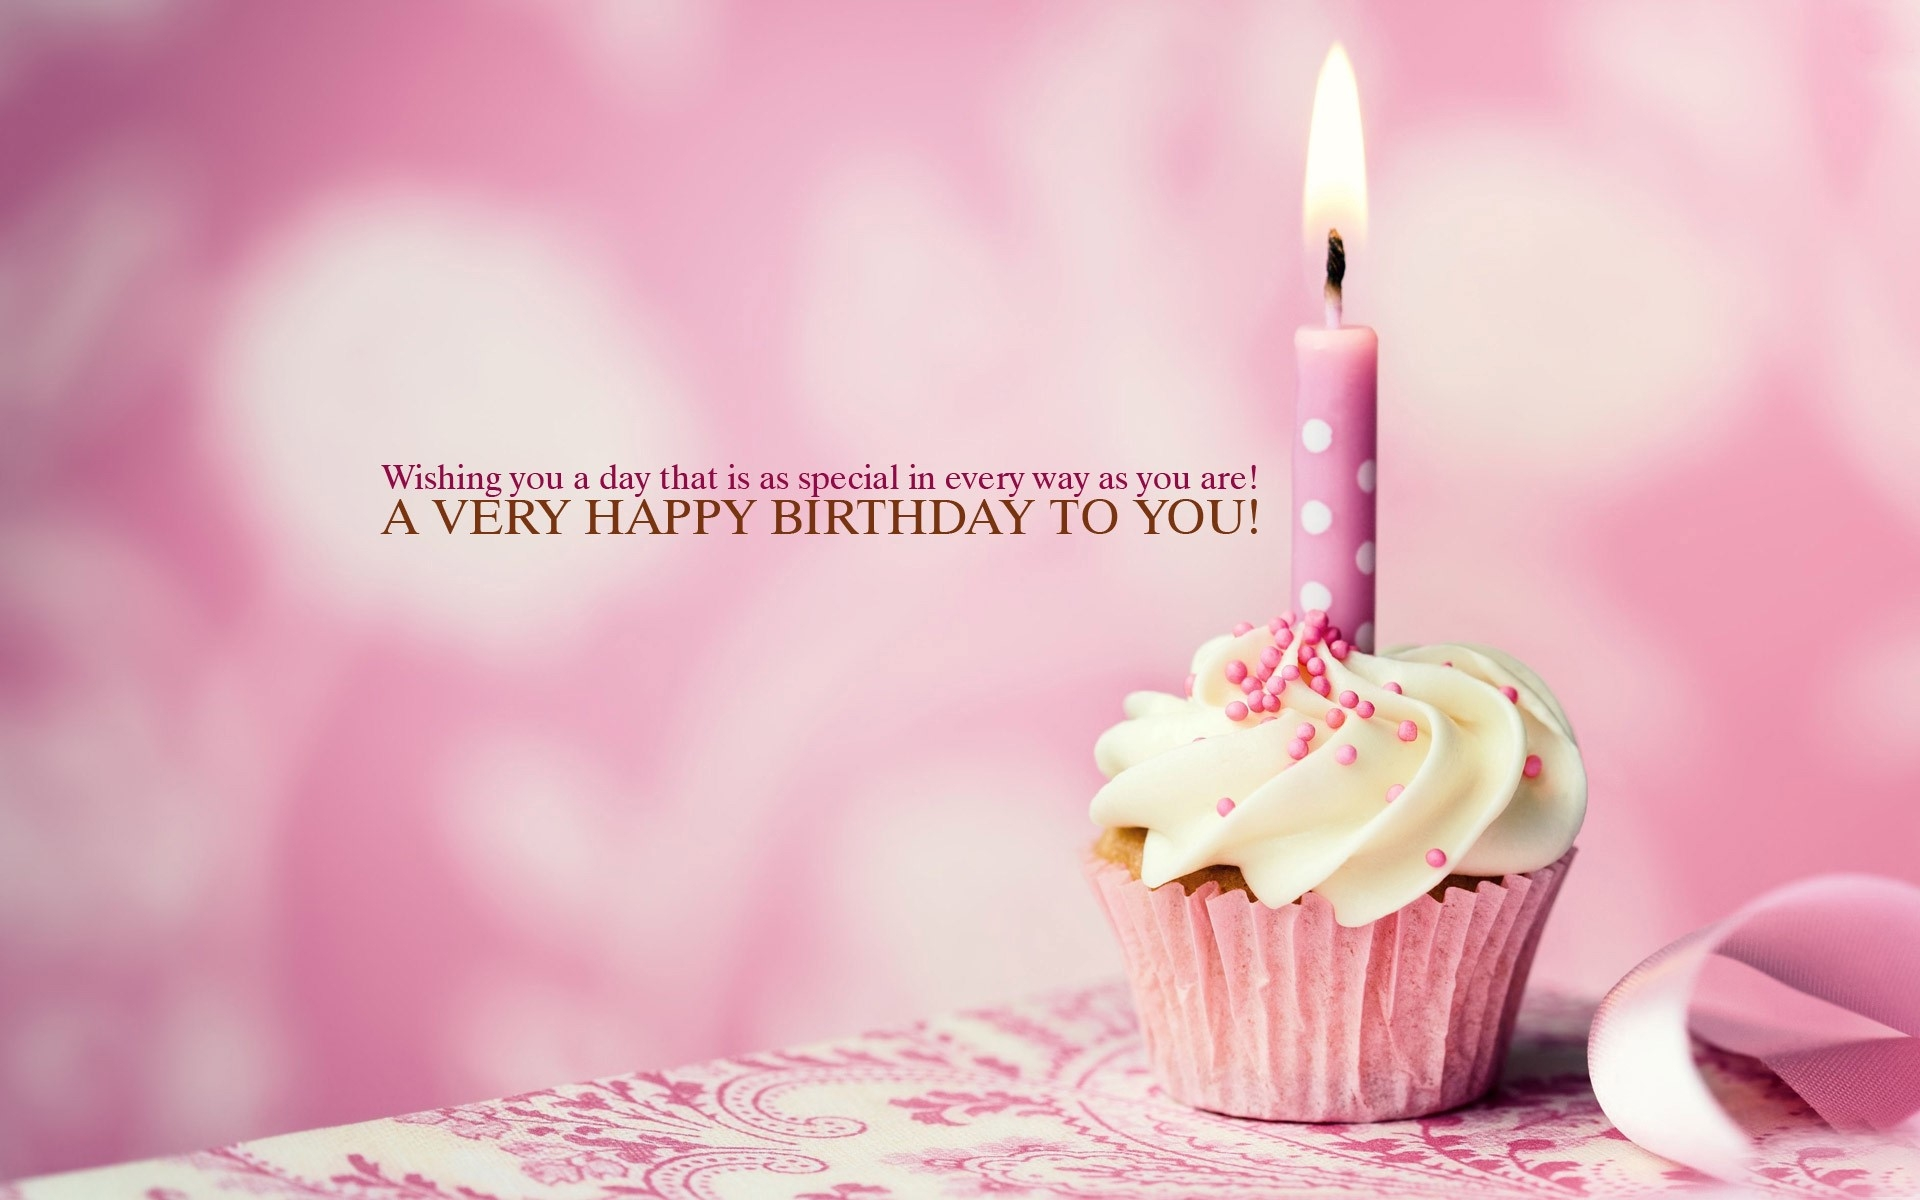 happy birthday pictures for a woman ; awesome-funny-birthday-pictures-for-women-21-8-latest-new-wallpapers-with-happy-birthday-quotes-for-woman-ideas